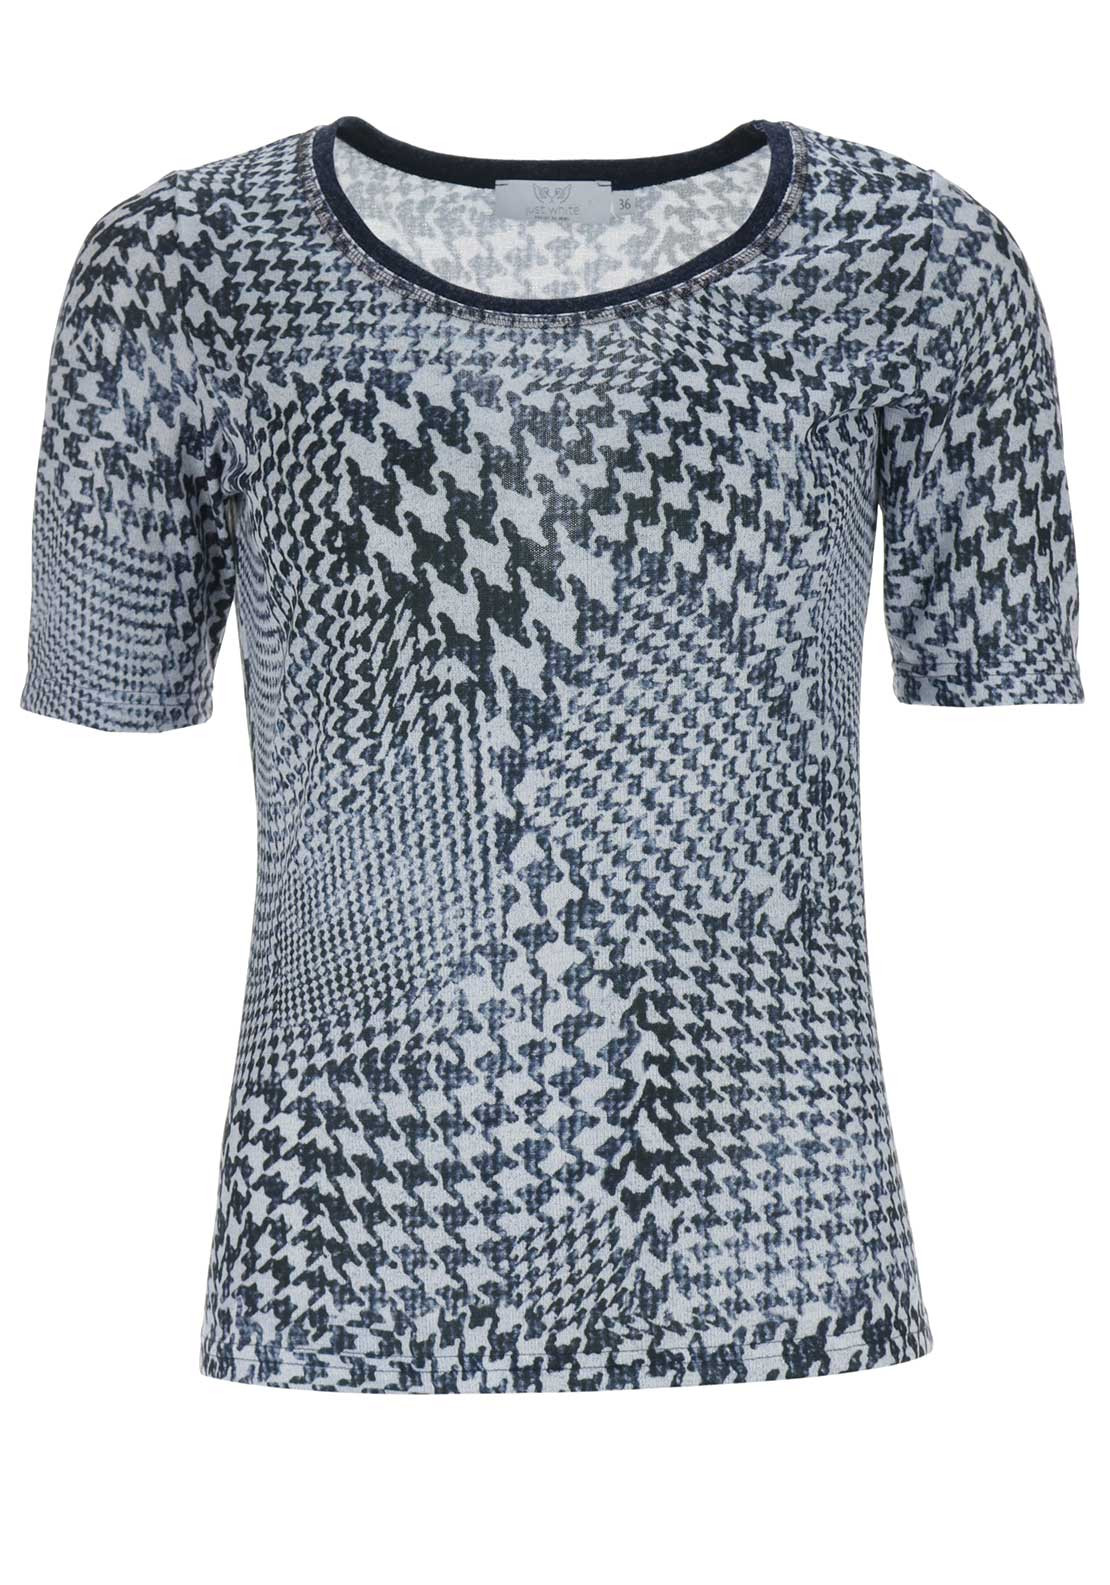 Just White Houndstooth Print Top, Navy